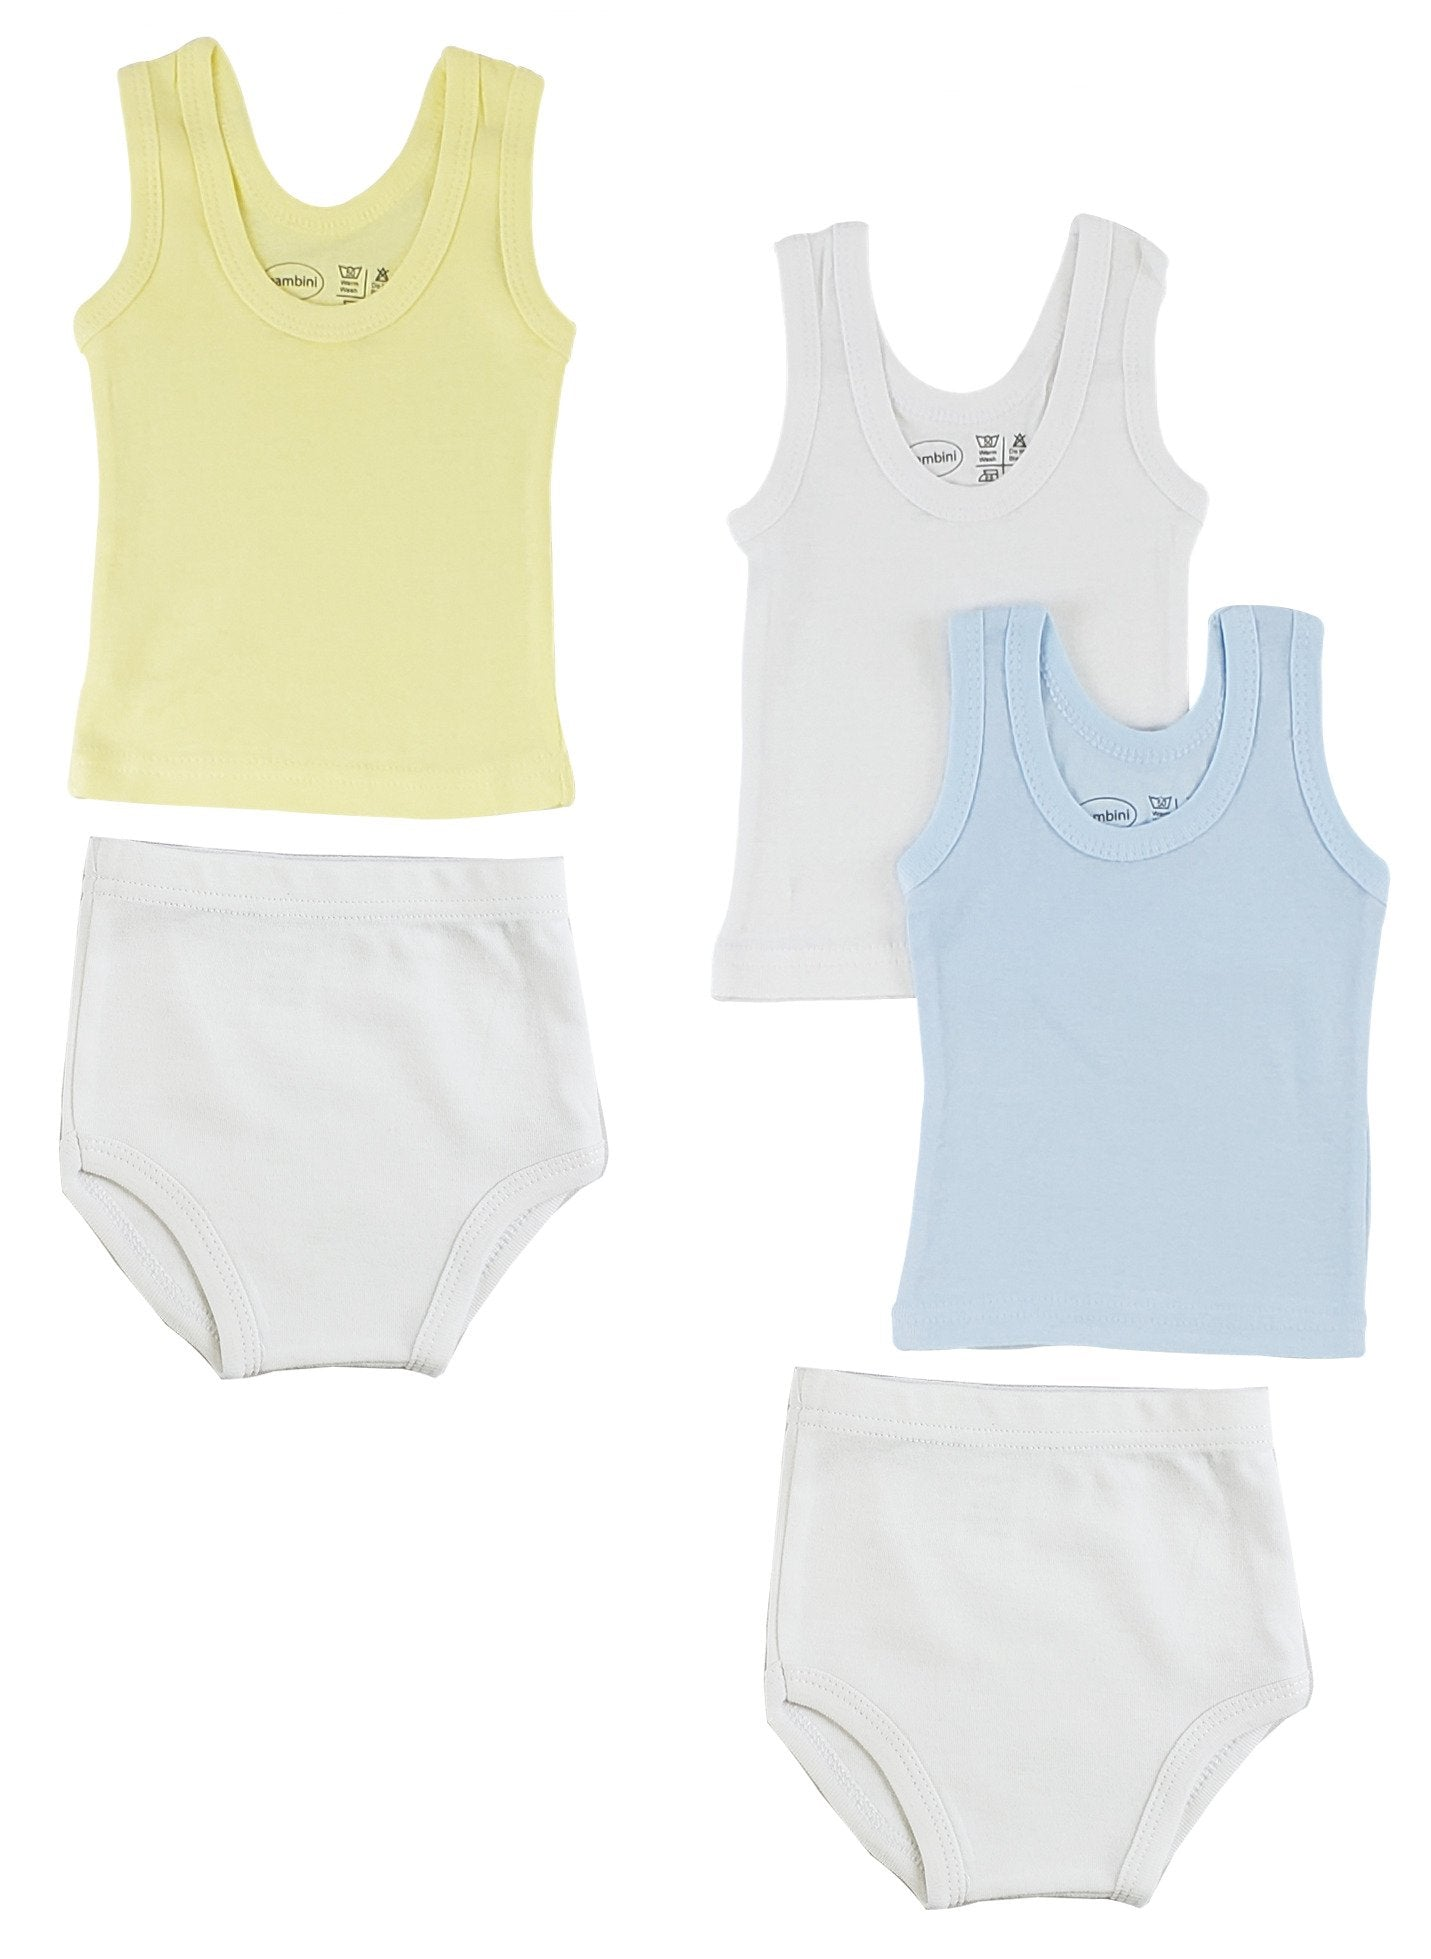 Boys Tank Tops and Training Pants - Baby World Inc